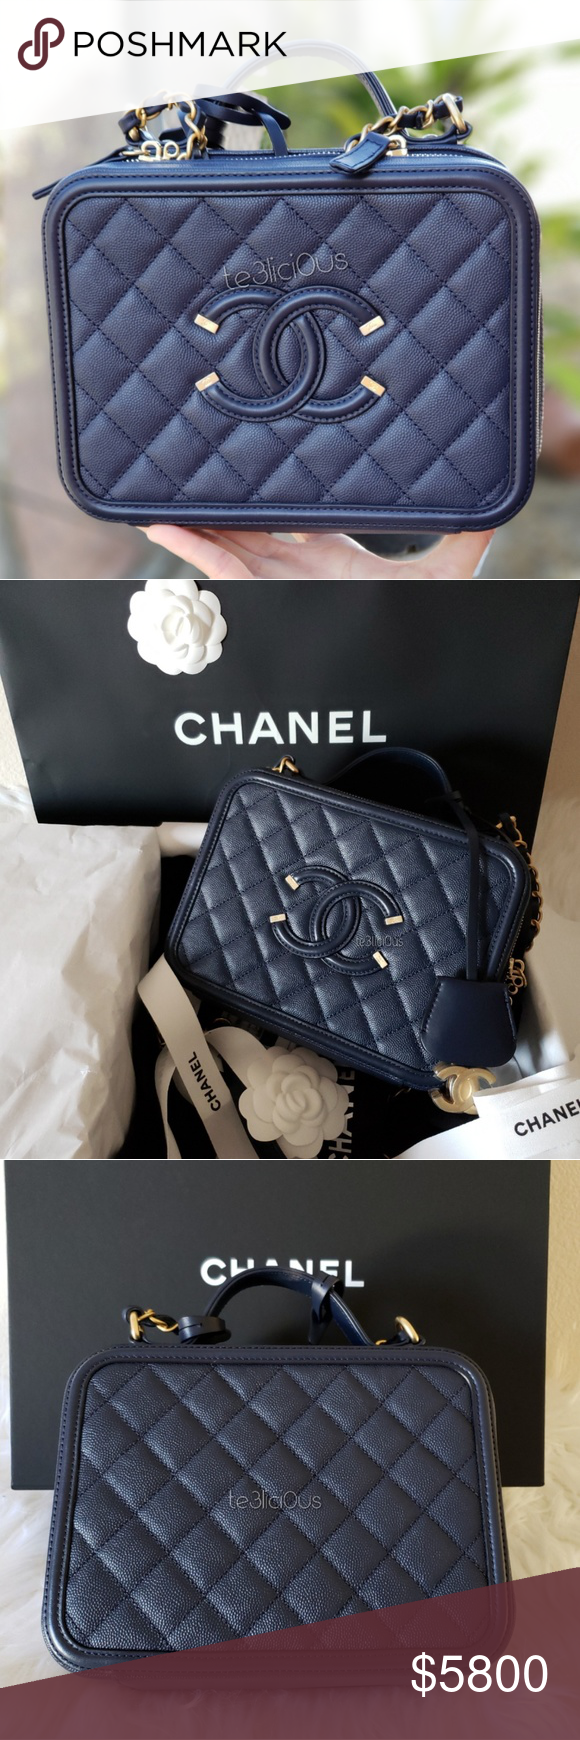 76474f9d4a82e2 Spotted while shopping on Poshmark: CHANEL VANITY CASE 18ss NAVY! #poshmark  #fashion